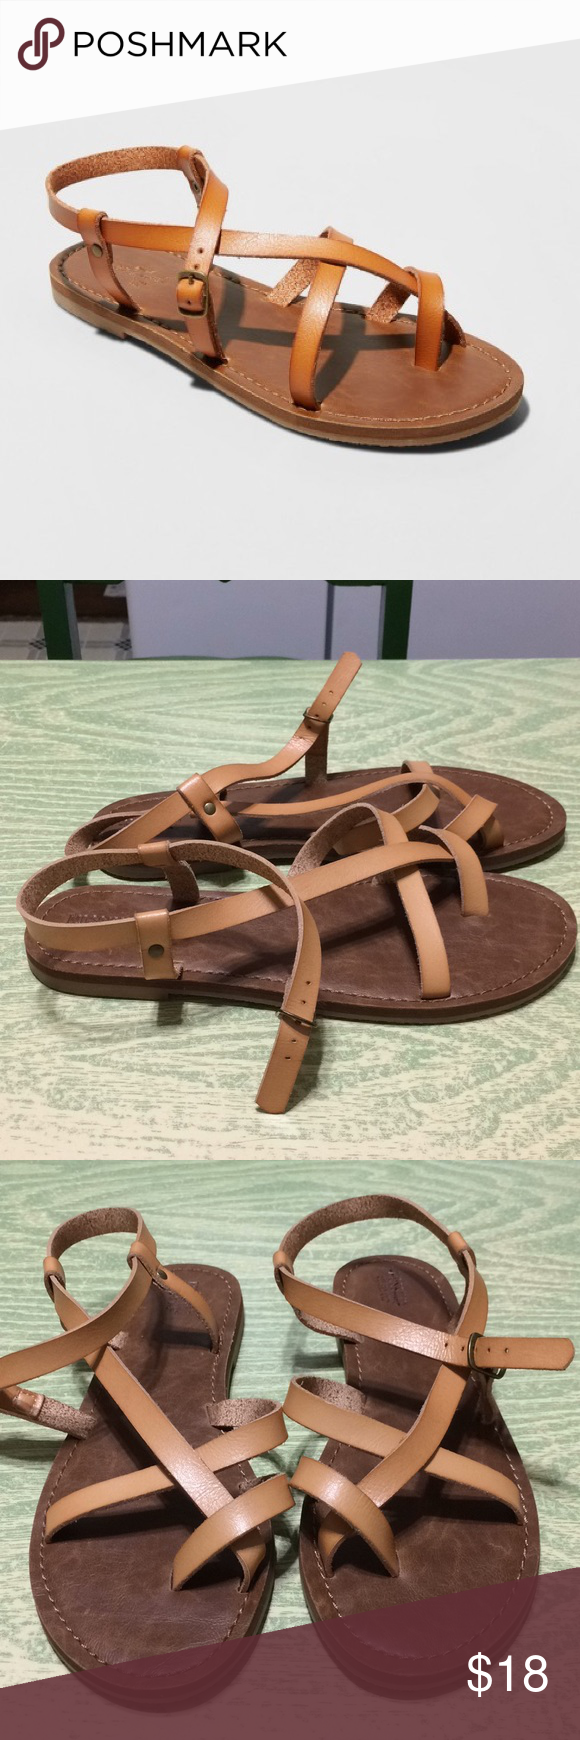 74b5d5560dba Women s Lavinia Toe Wrap Thong Sandal New Mossimo Sandals in a size 8.5.  Universal